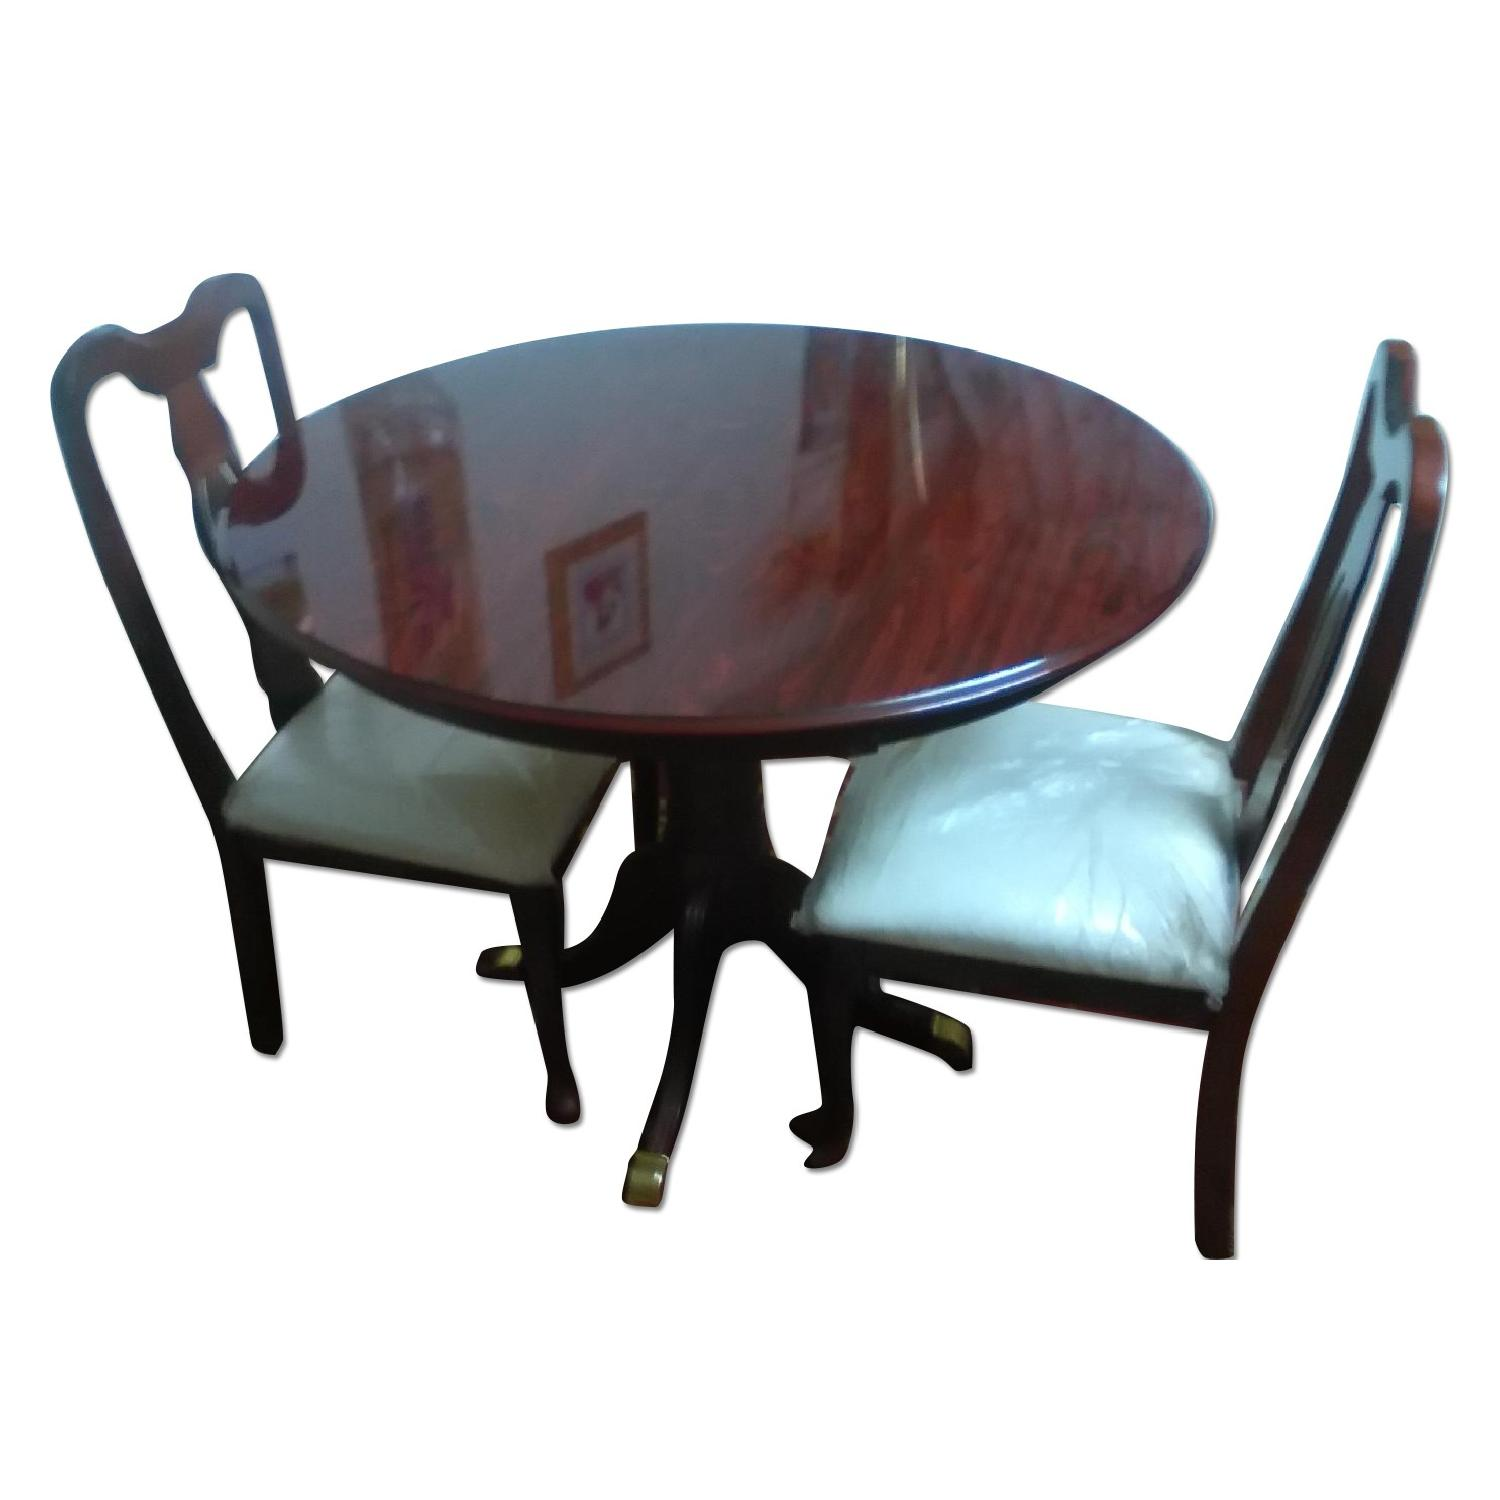 Aptdeco used pier 1 dining room table and chairs for for Pier 1 dining room bench